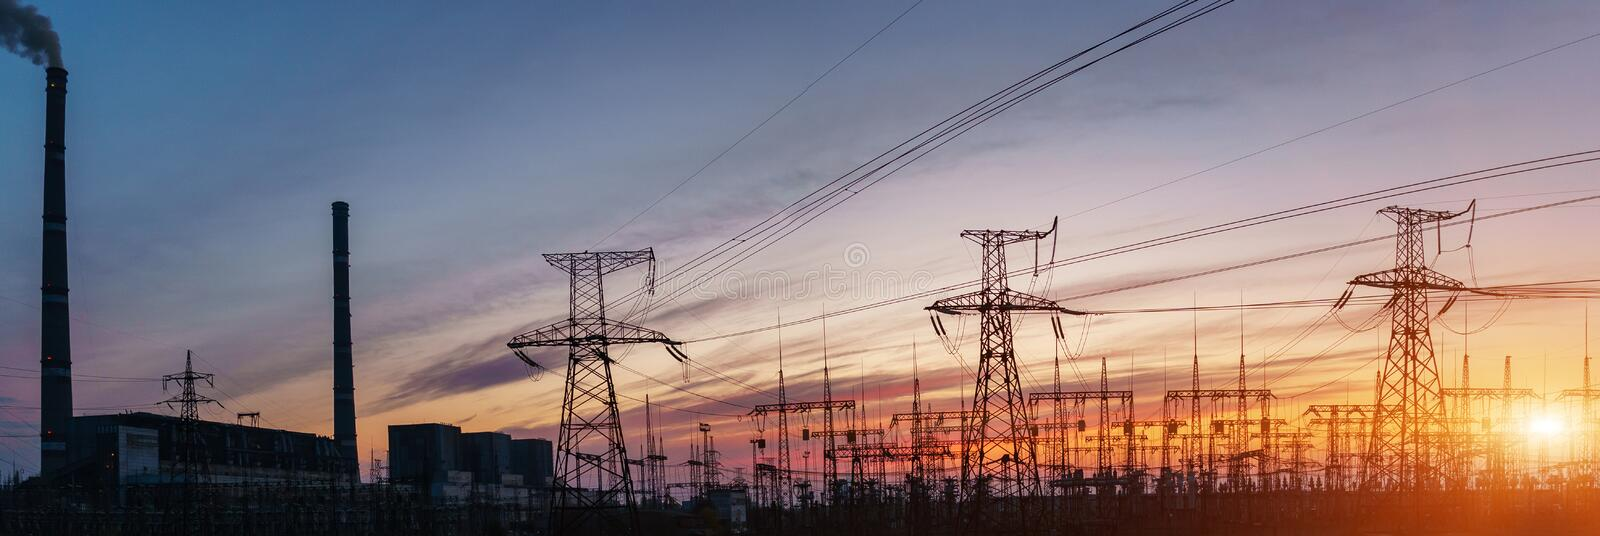 Thermal power stations and power lines during sunset royalty free stock photos